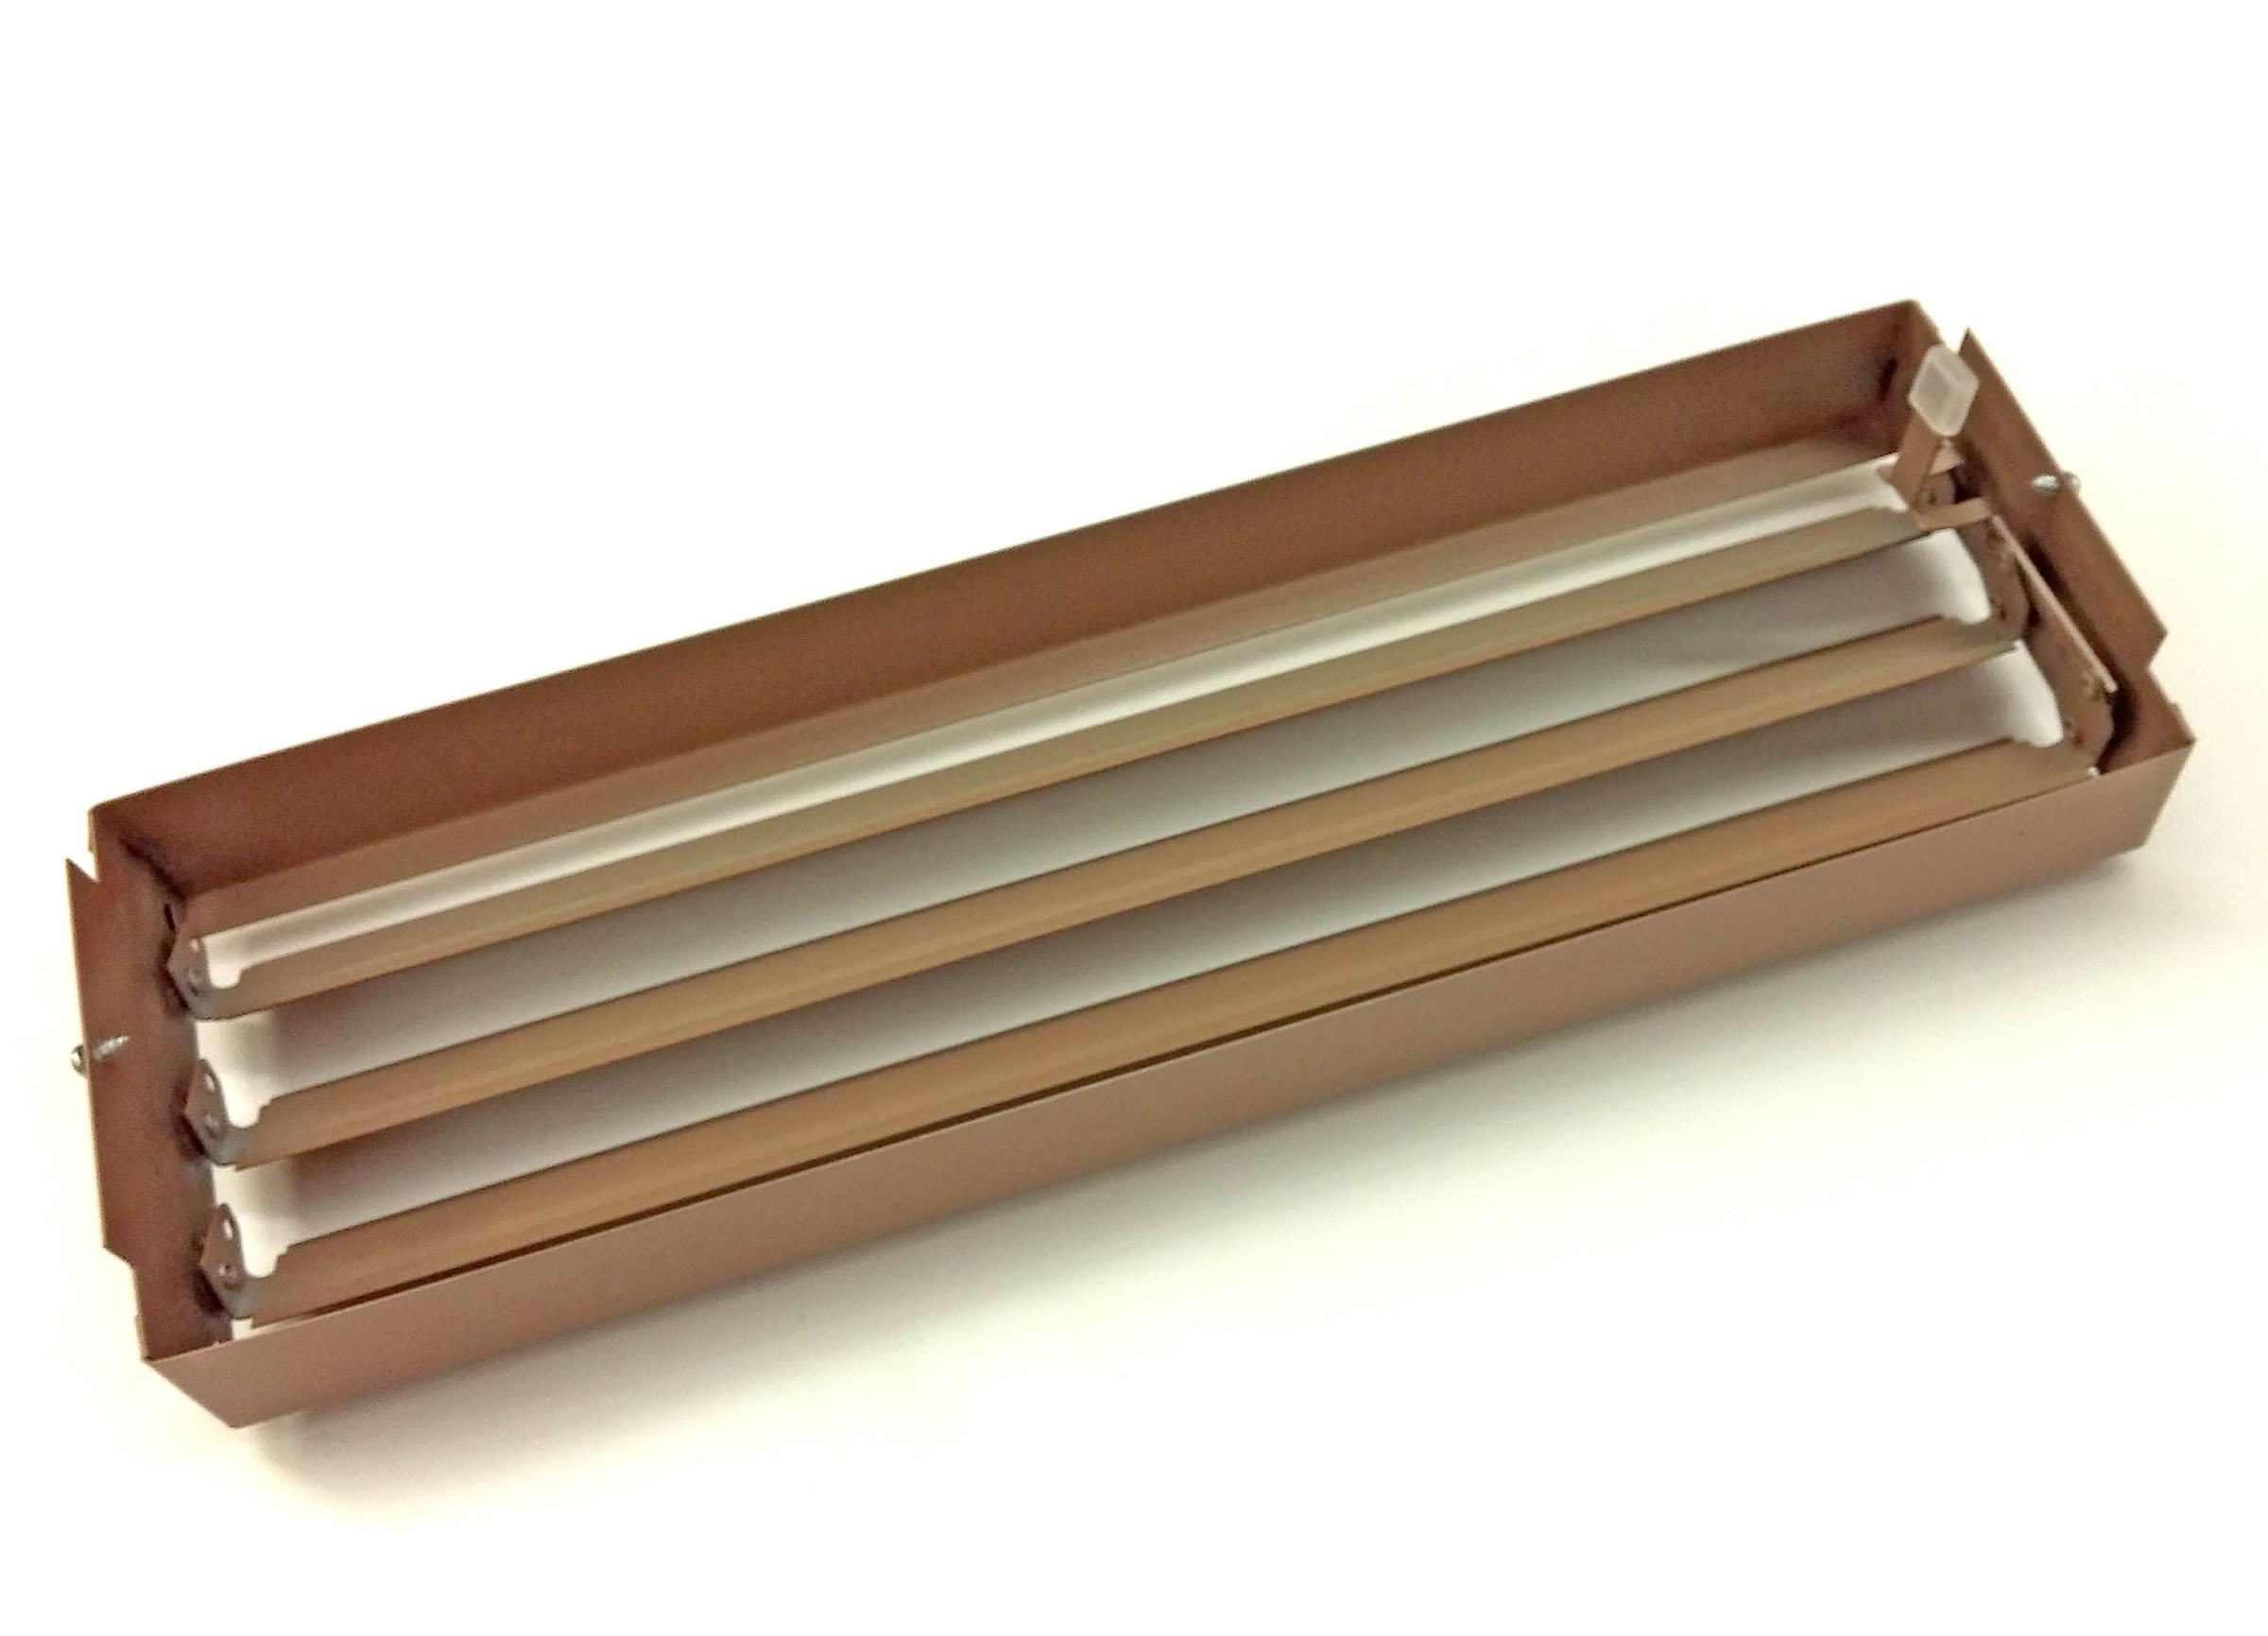 Clearance  Box Damper Only 2 1 2 Inch Wide Standard Sizes by Grill Works